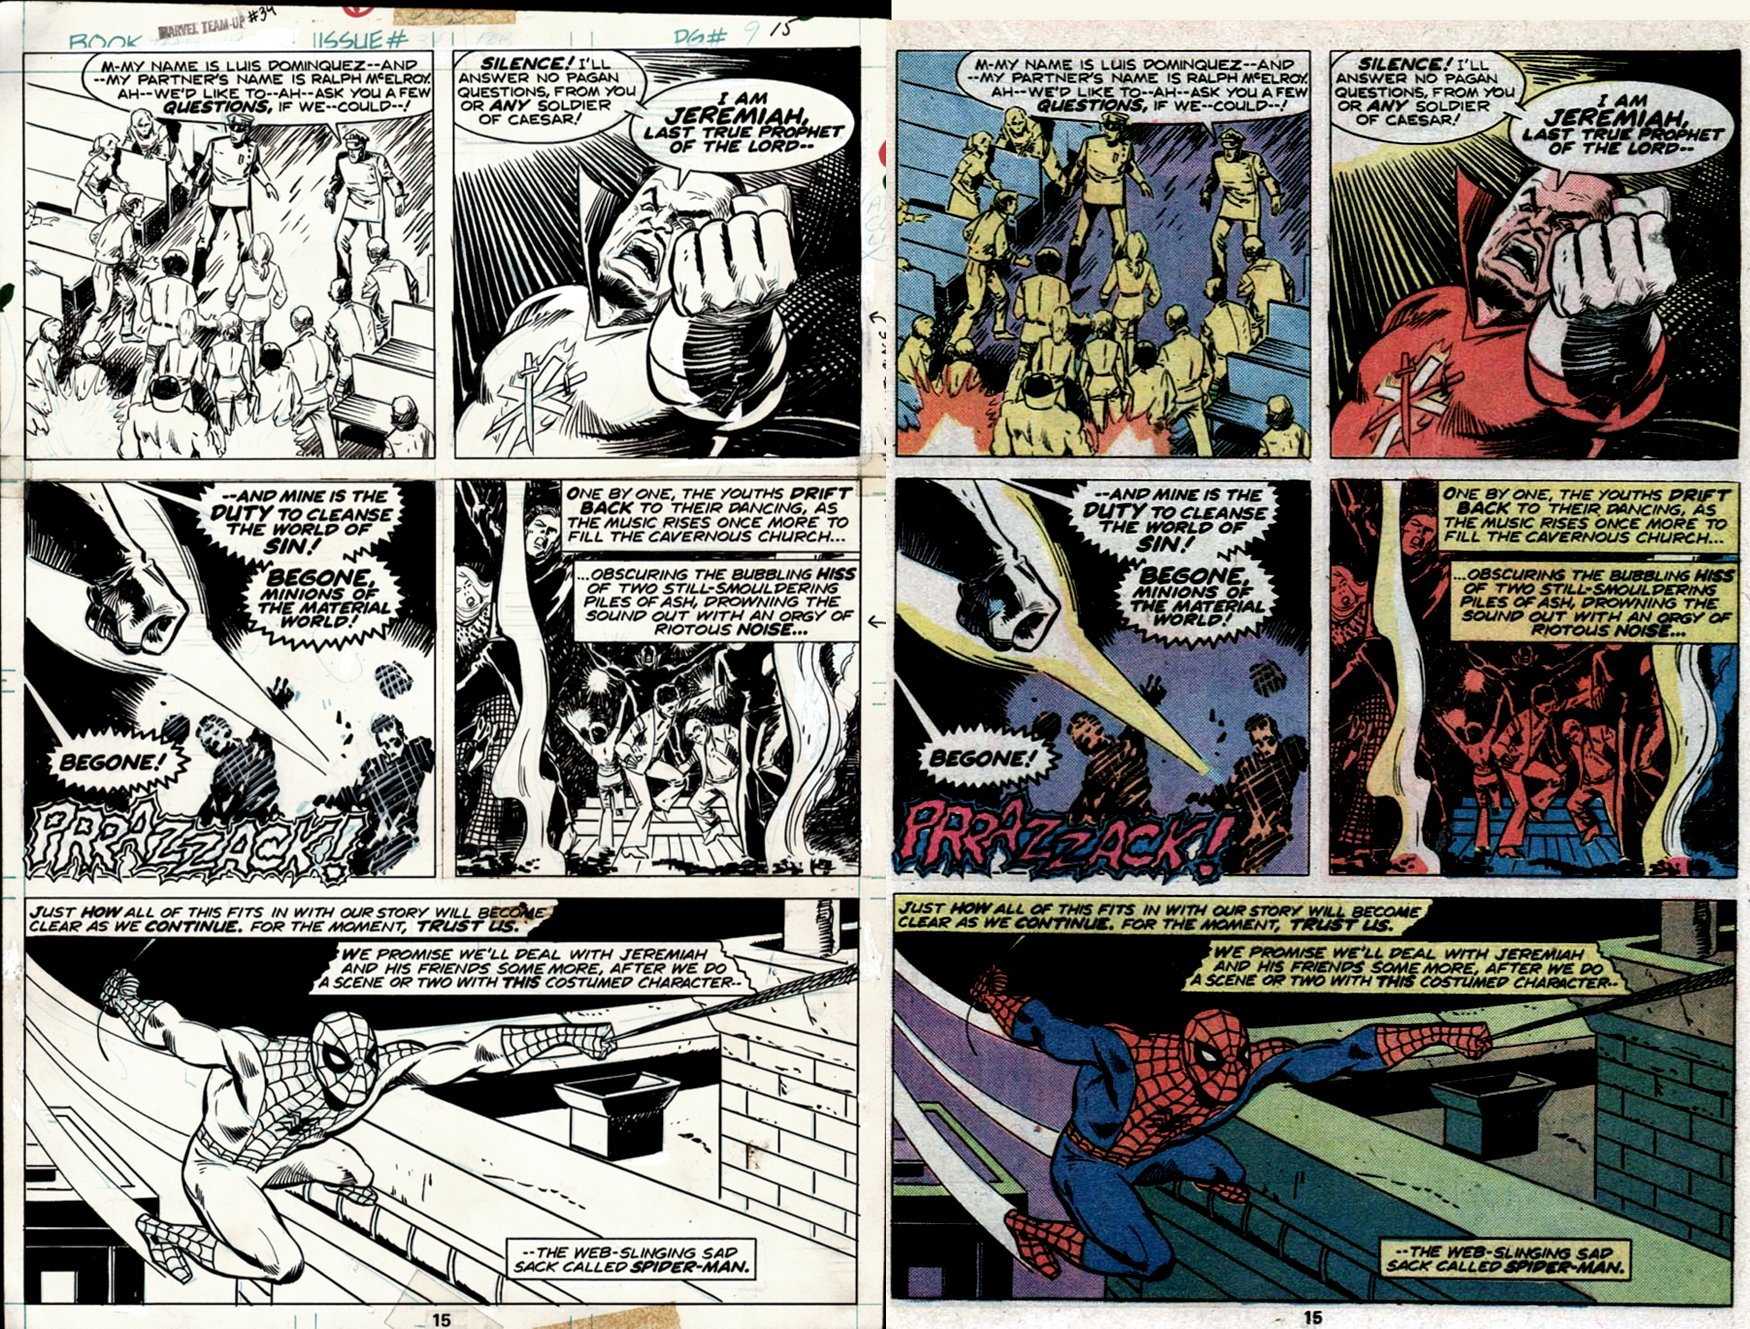 Marvel Team-Up #34 p 15 (SWINGING SPIDEY SPREAD & POLICE OFFICER LUIS DOMINGUEZ GETS KILLED ON THIS VERY PAGE!) 1975